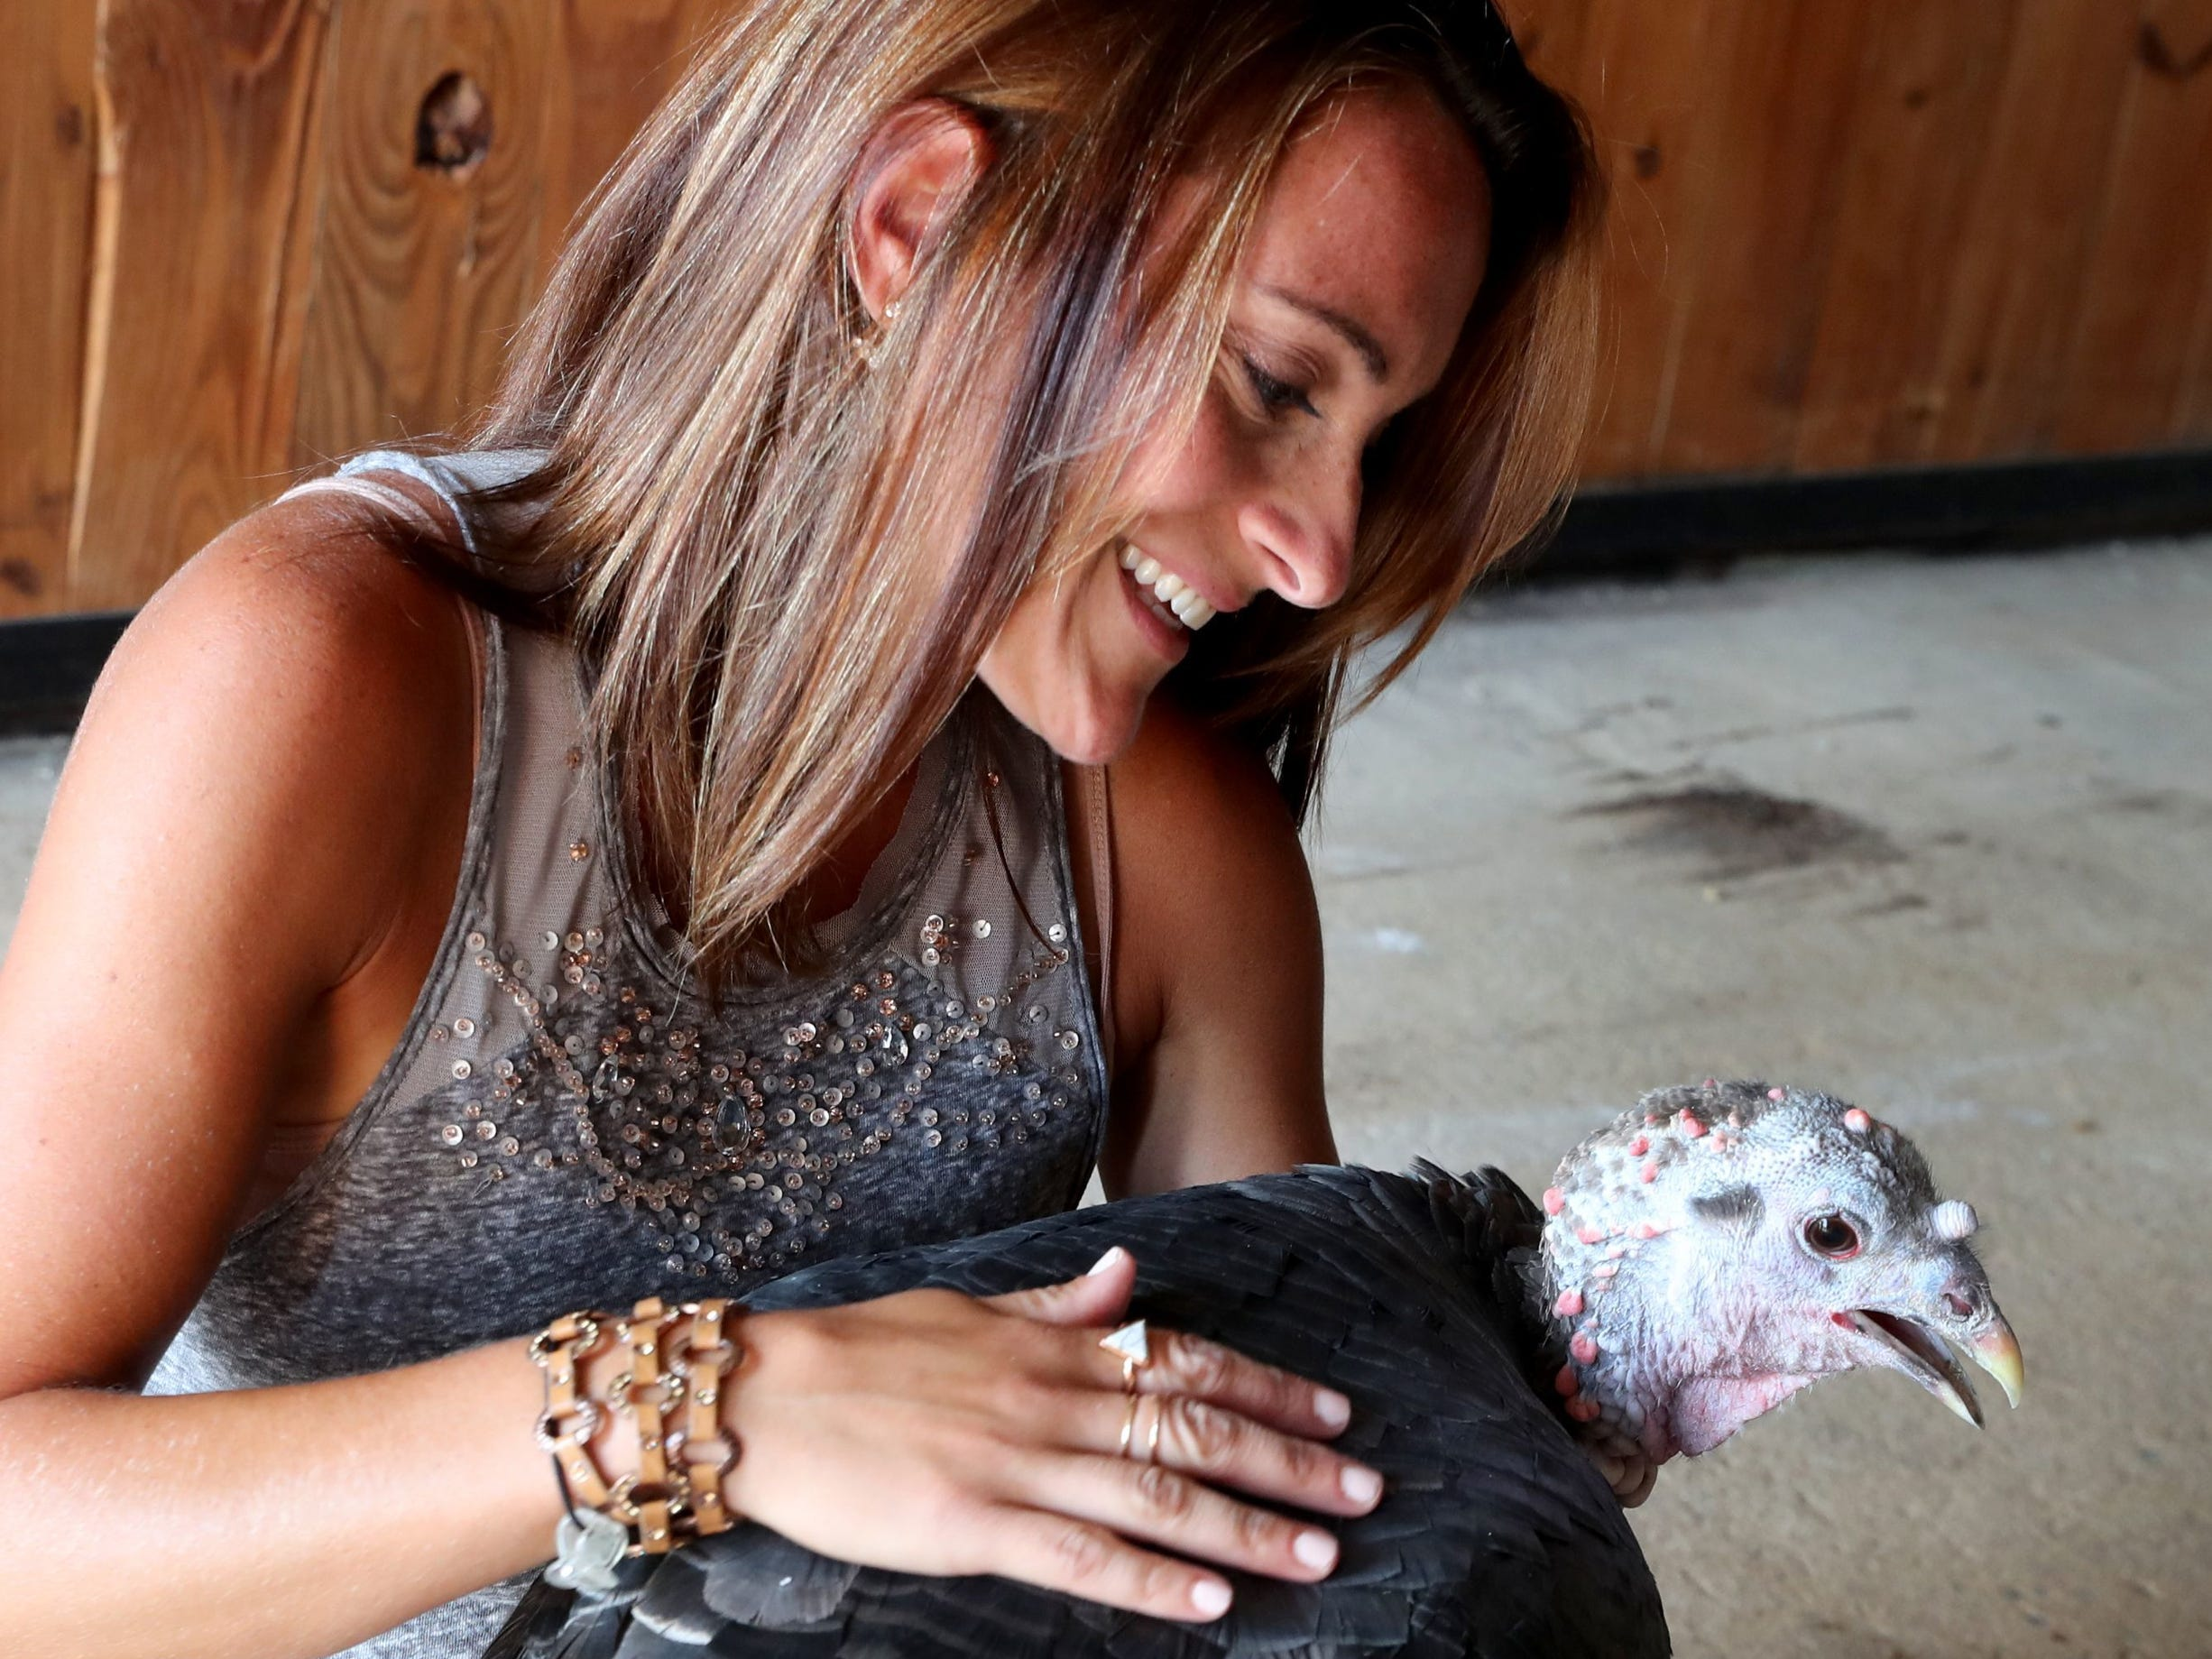 Donna Sabeno loves on one of the turkeys at the new Christiana location of The Gentle Barn on Aug. 12.Donna Sabeno loves on one of the turkeys at the new Christiana location of the The Gentle Barn a home, on Sunday, Aug. 12, 2018.